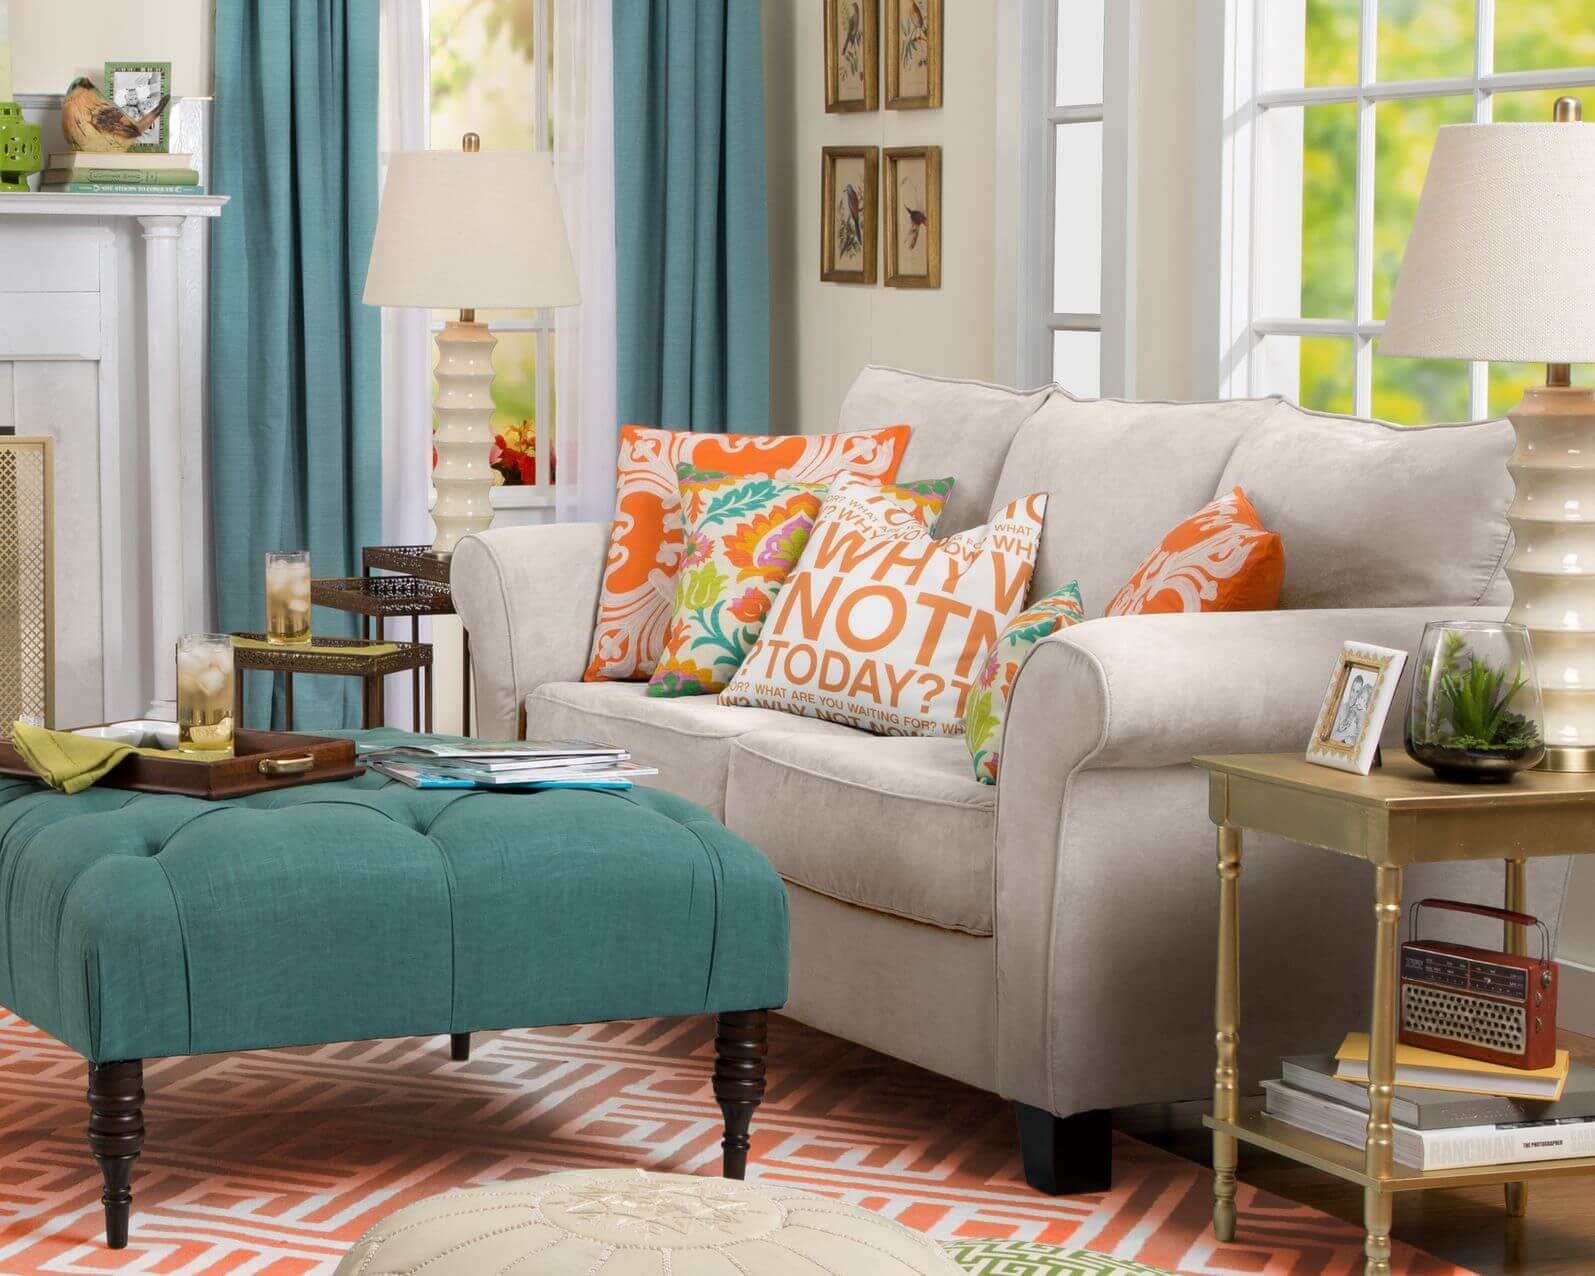 Image result for living room with ottoman